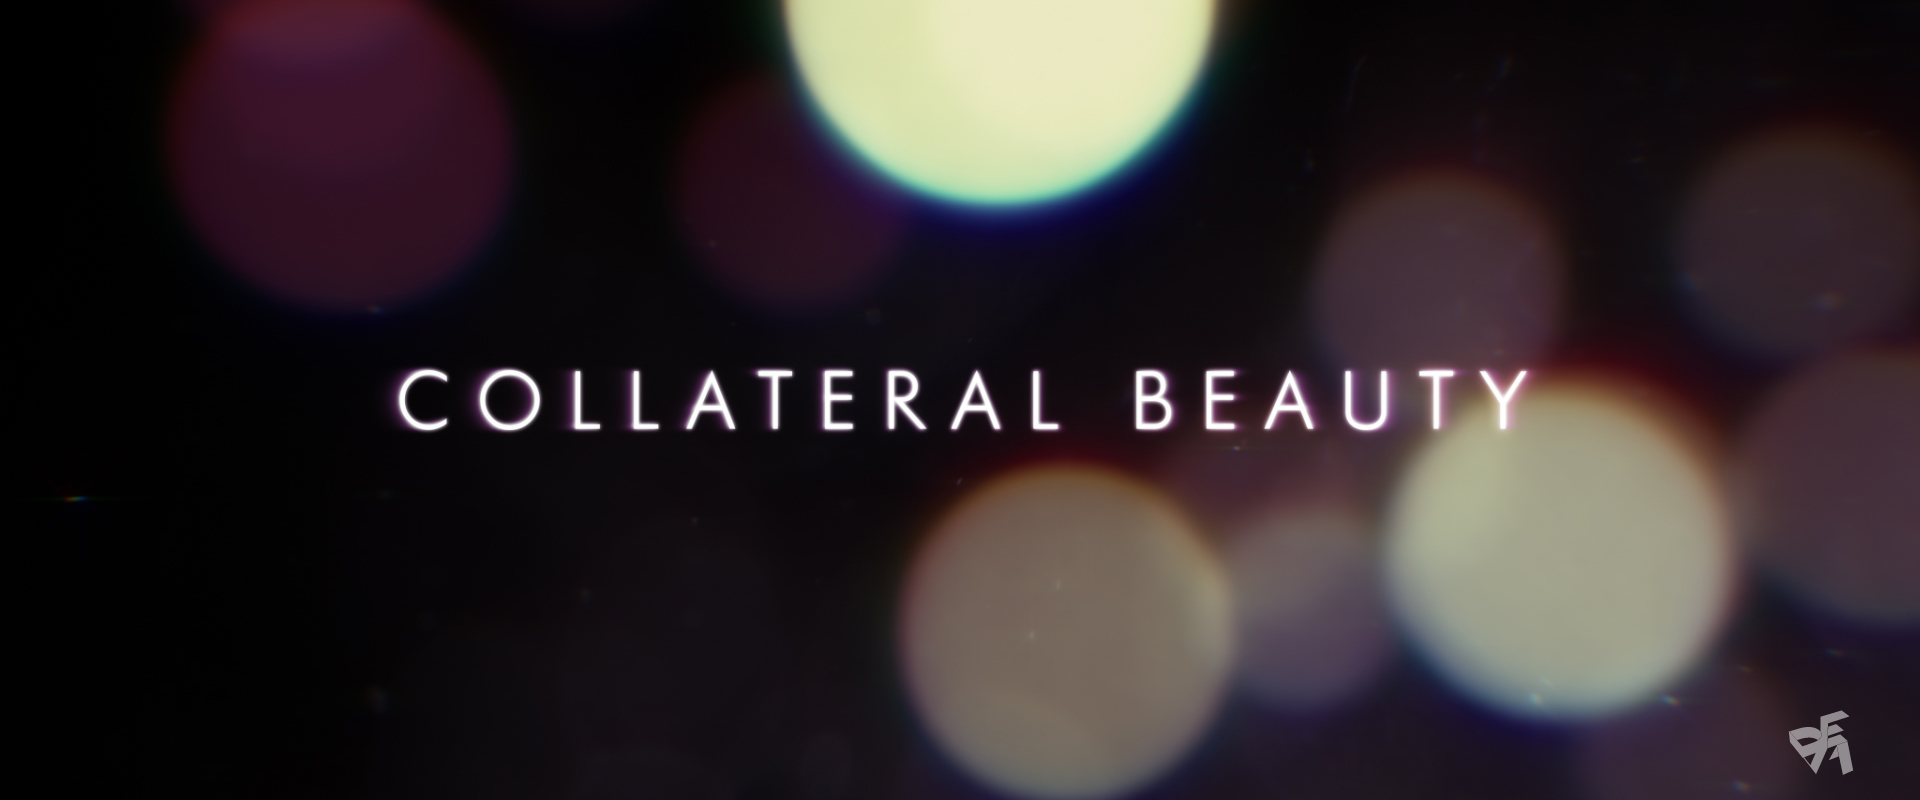 CollateralBeauty-STYLEFRAME_02.jpg